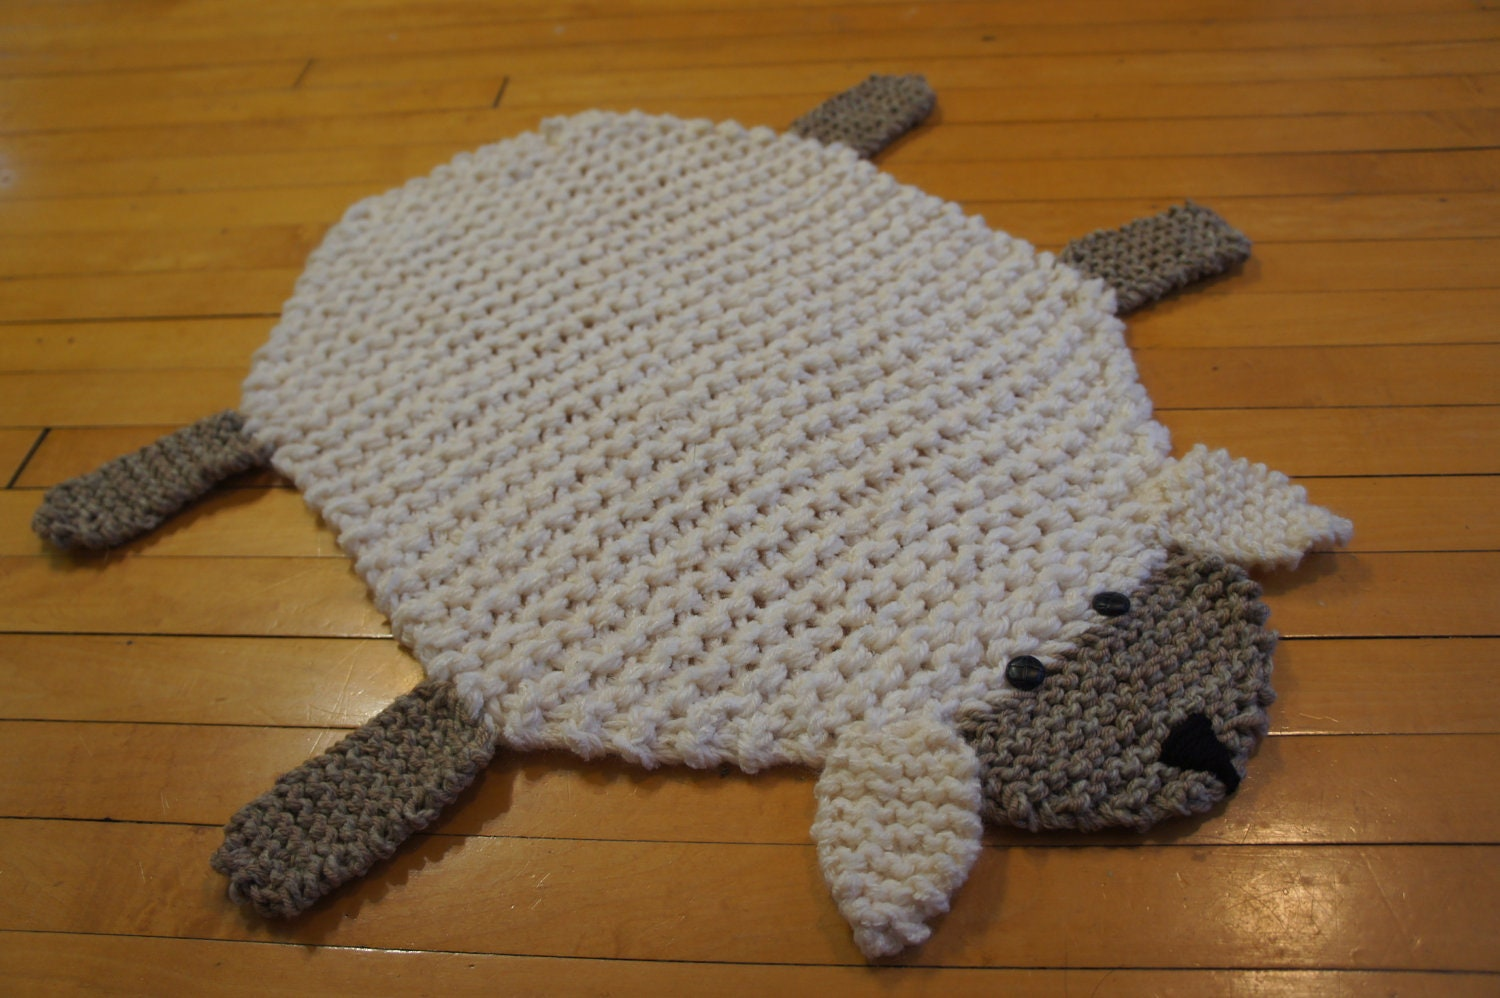 Flat sheep rug/ mat/ blanket